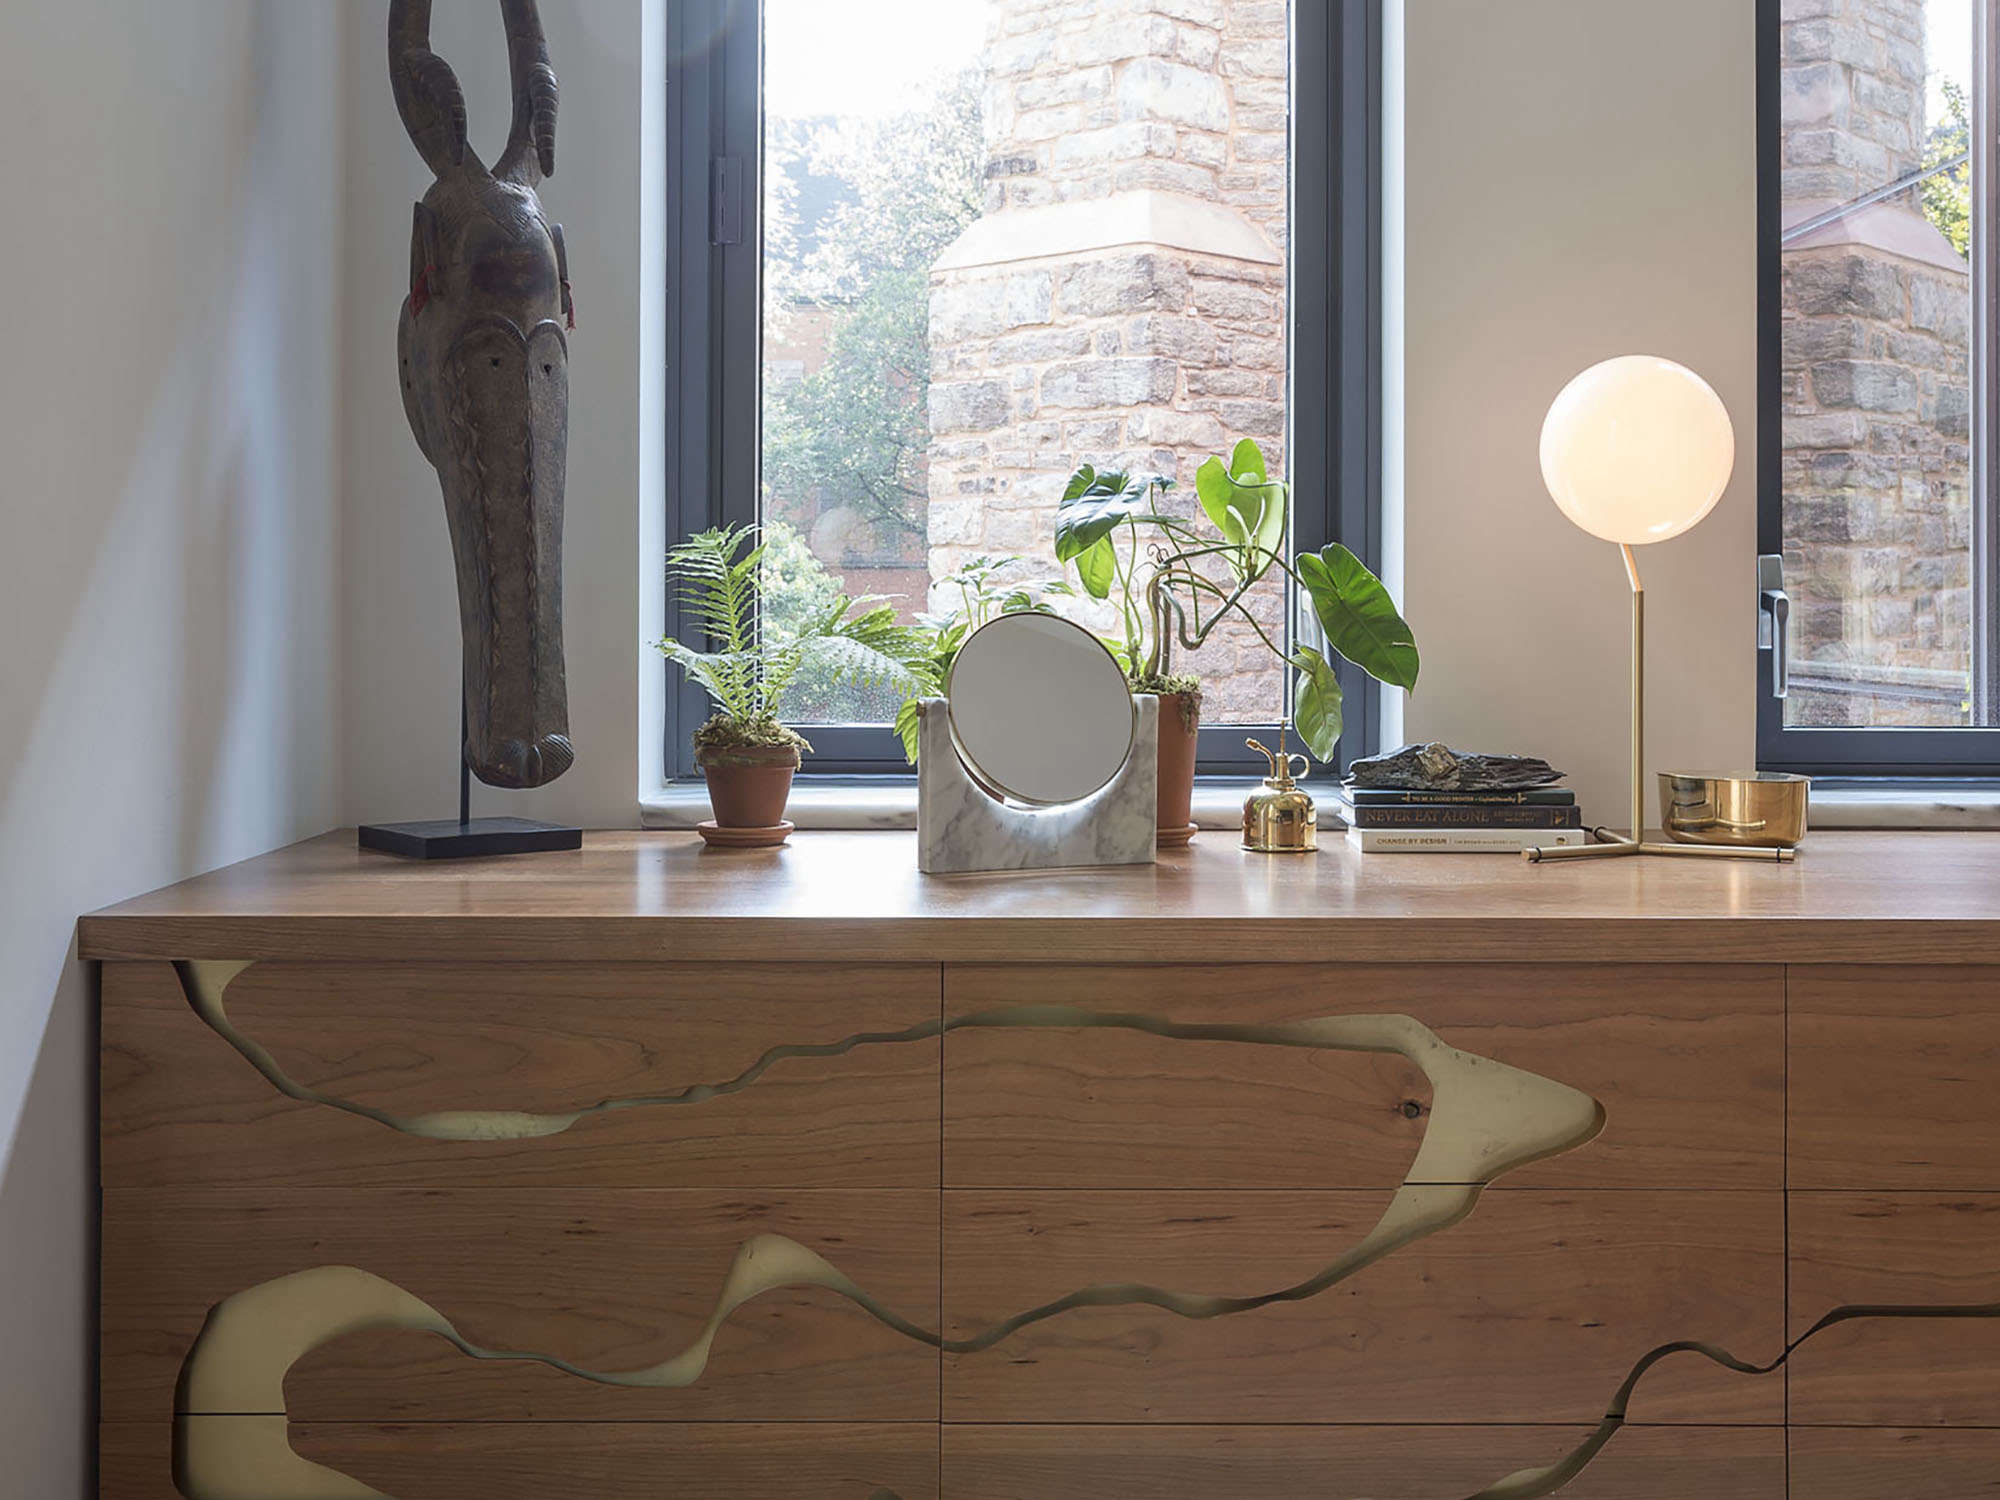 Asher Israelow custom dresser with river cutout pattern in Workstead-designed Chelsea apartment | Remodelista